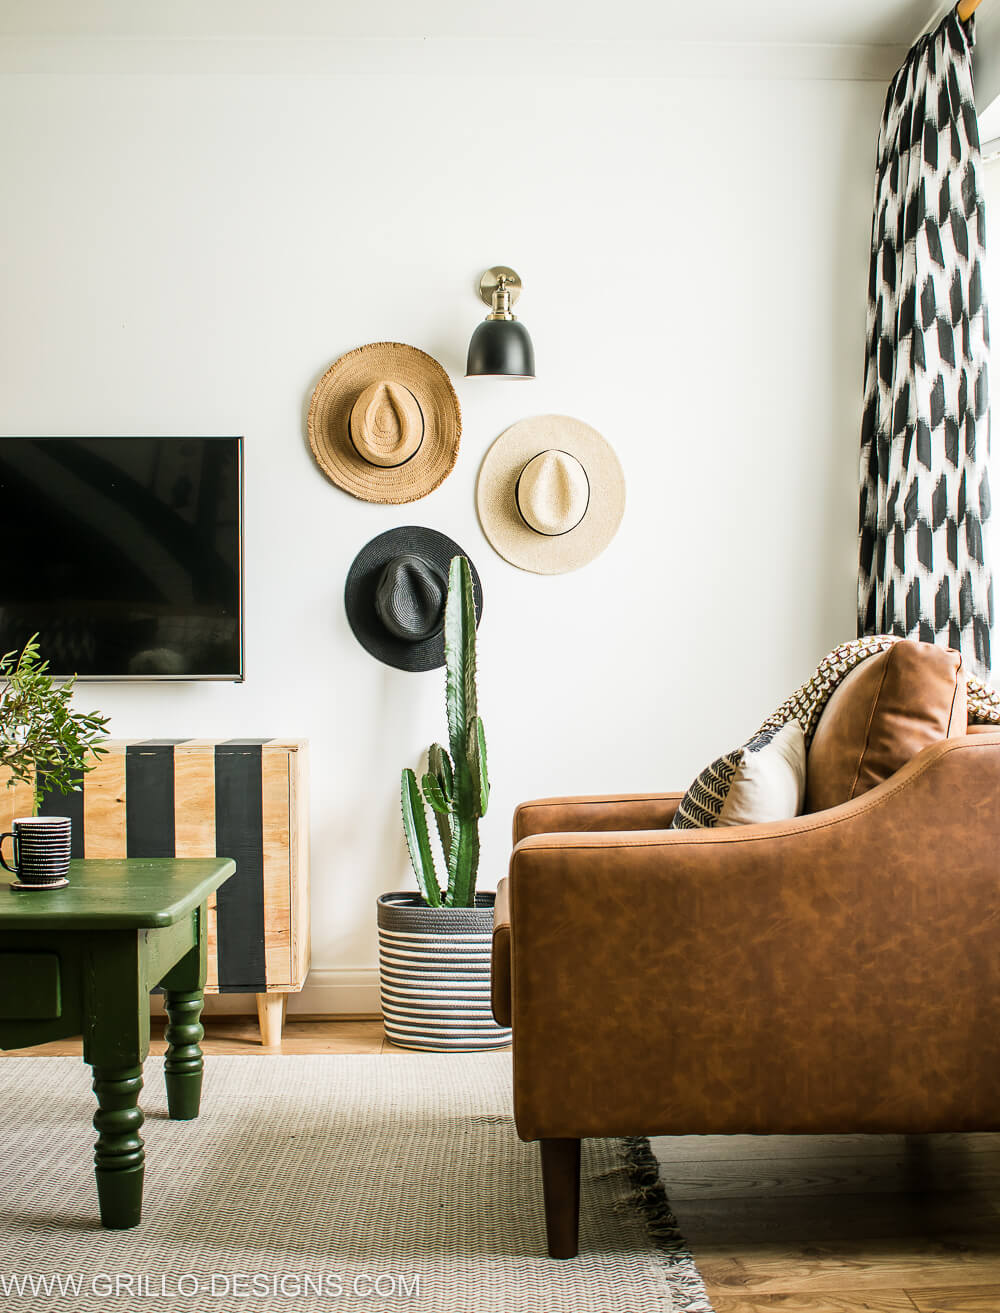 Brown sofa with cactus and gallery hat wall in the background